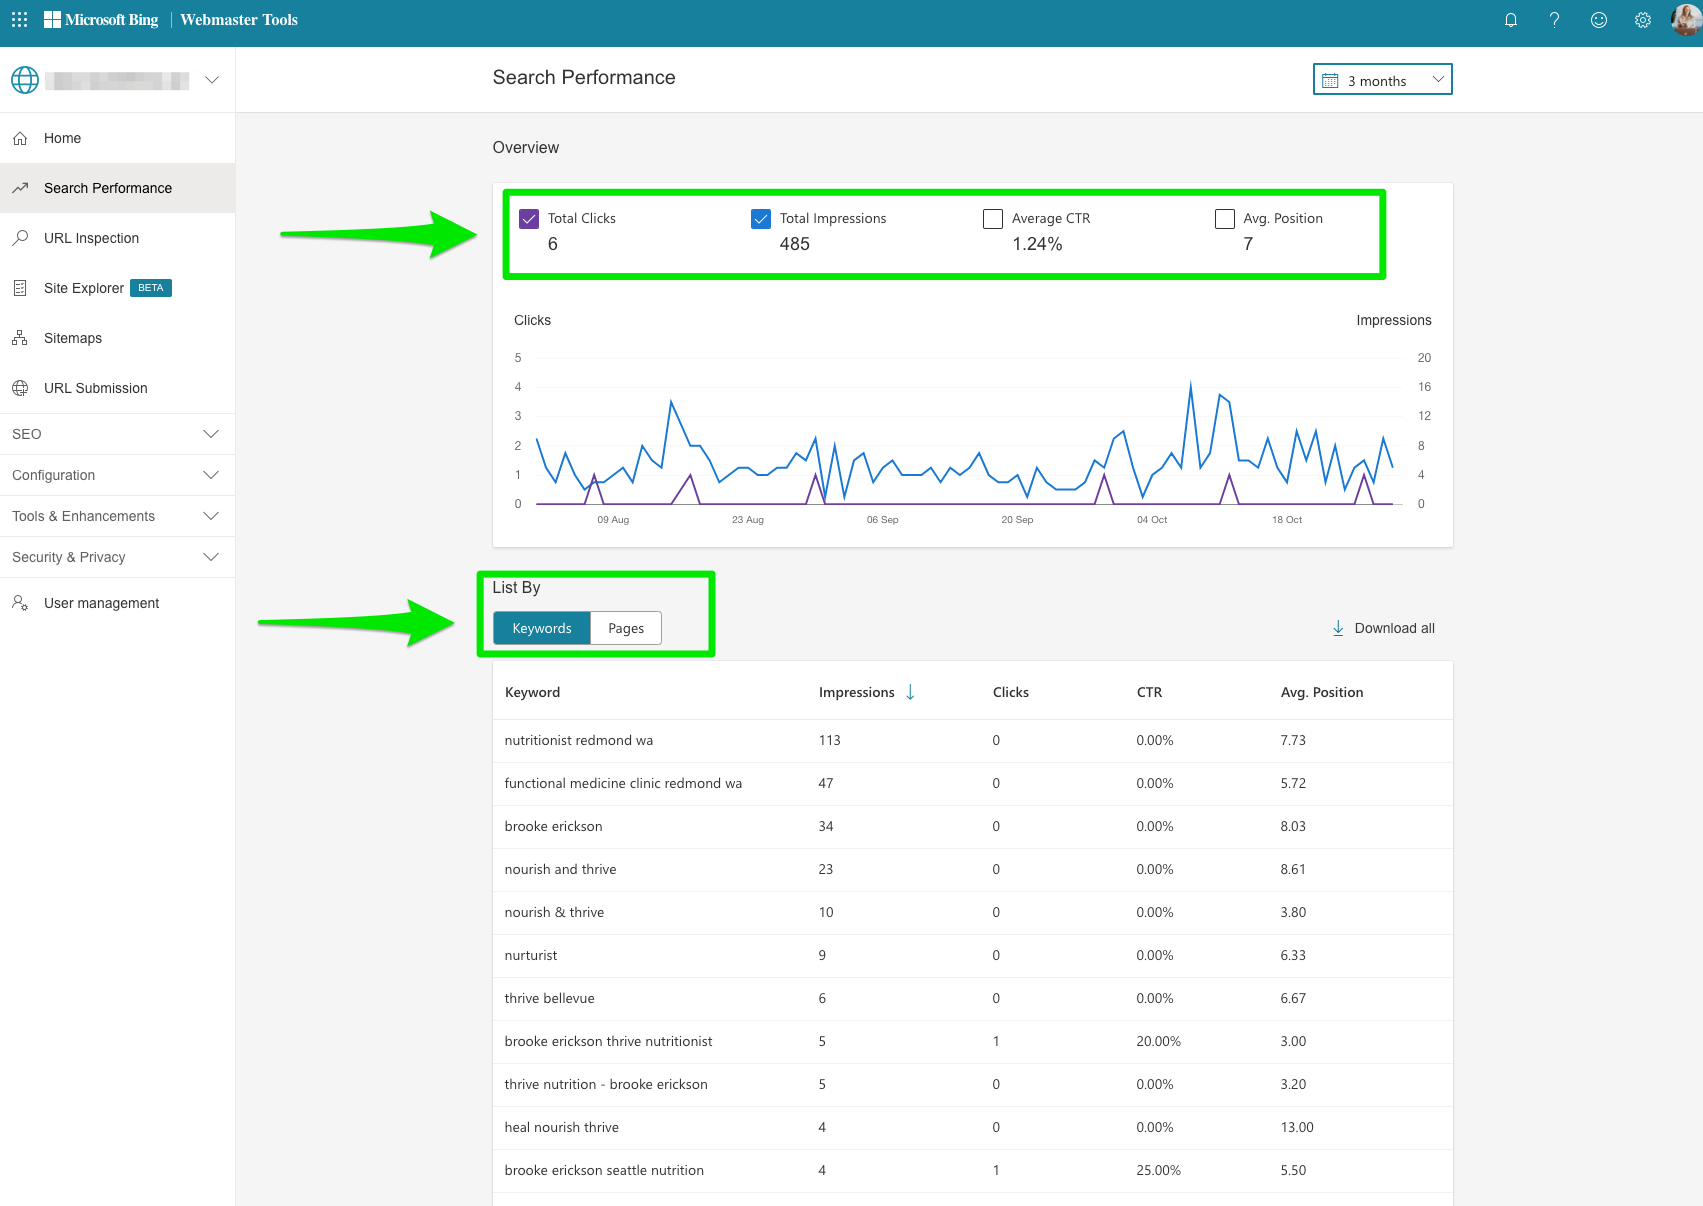 Webmaster Tools Search Performance